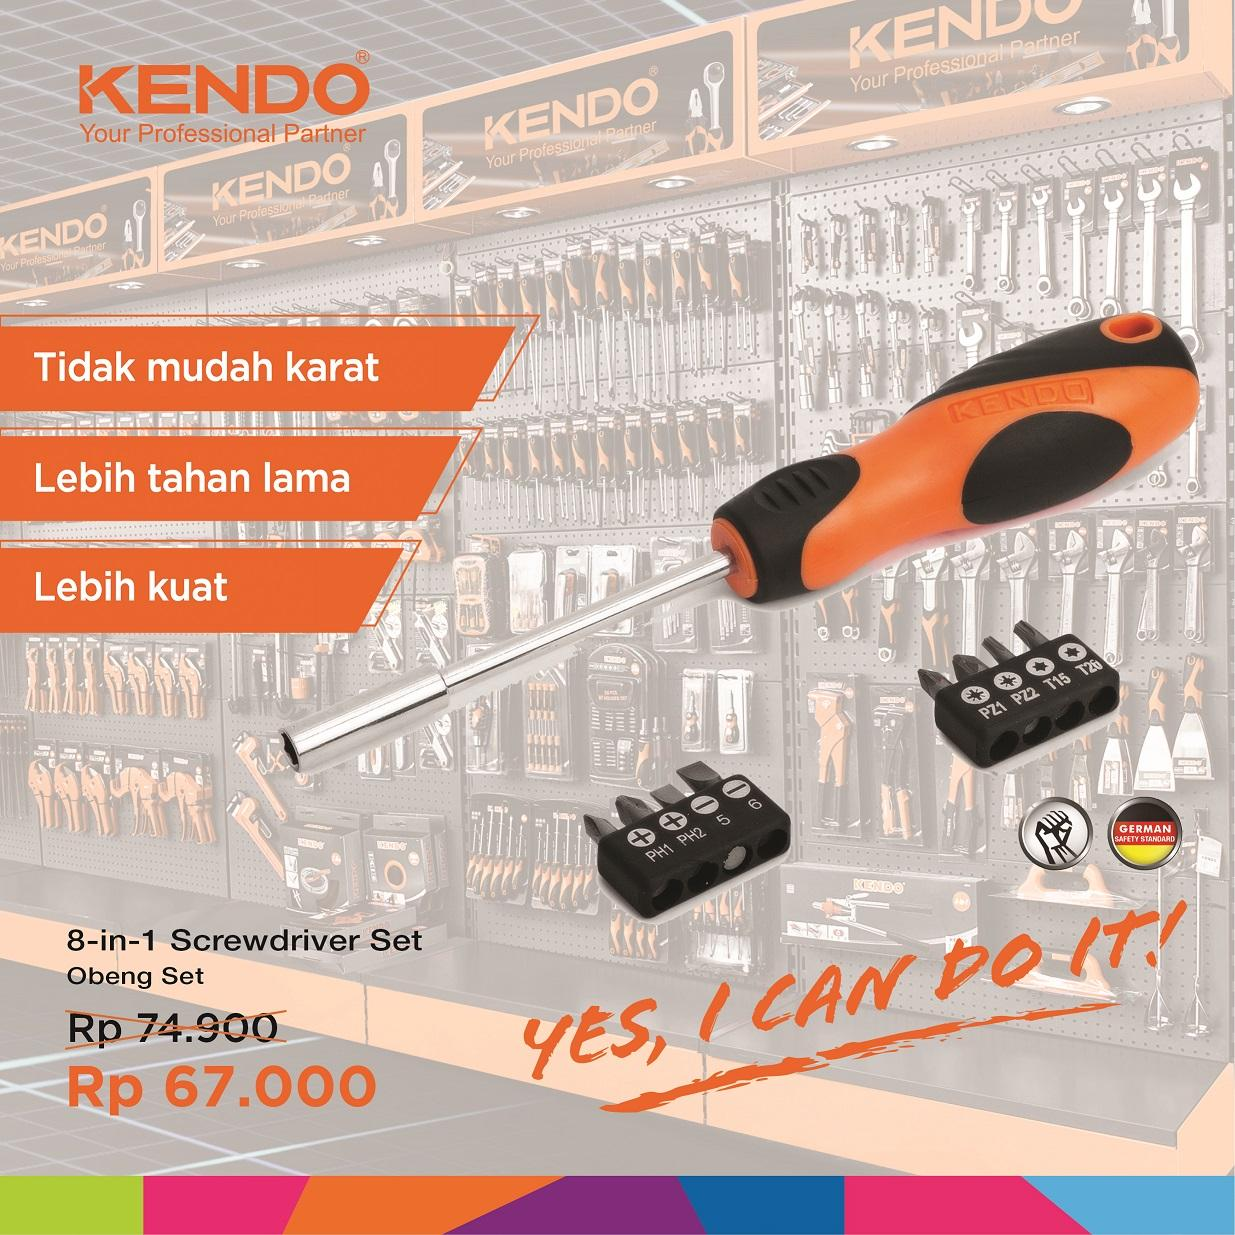 10 Buah 064 Cm Ph2 Dilapisi Titanium Magnetic Cross Mata Obeng 25 Mm Angin Bor Gypsum 65mm Double Ended Bits Screwdriver Kendo 8 In 1 Set Kd 20236 By Bionic Hardware